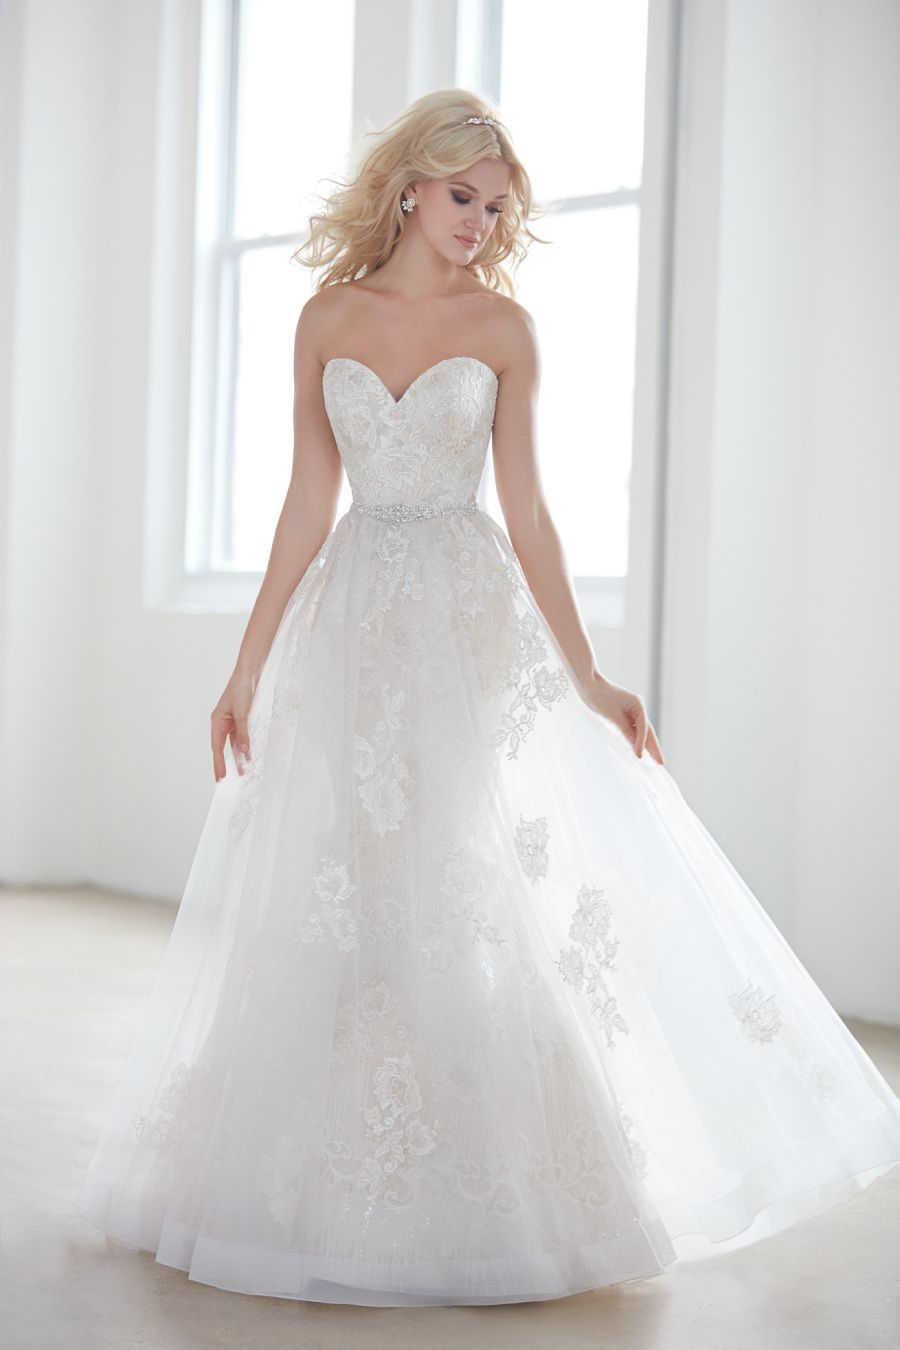 Styles of wedding dresses  Wedding Gown Alert See the Style That Are About To Take Over Your World